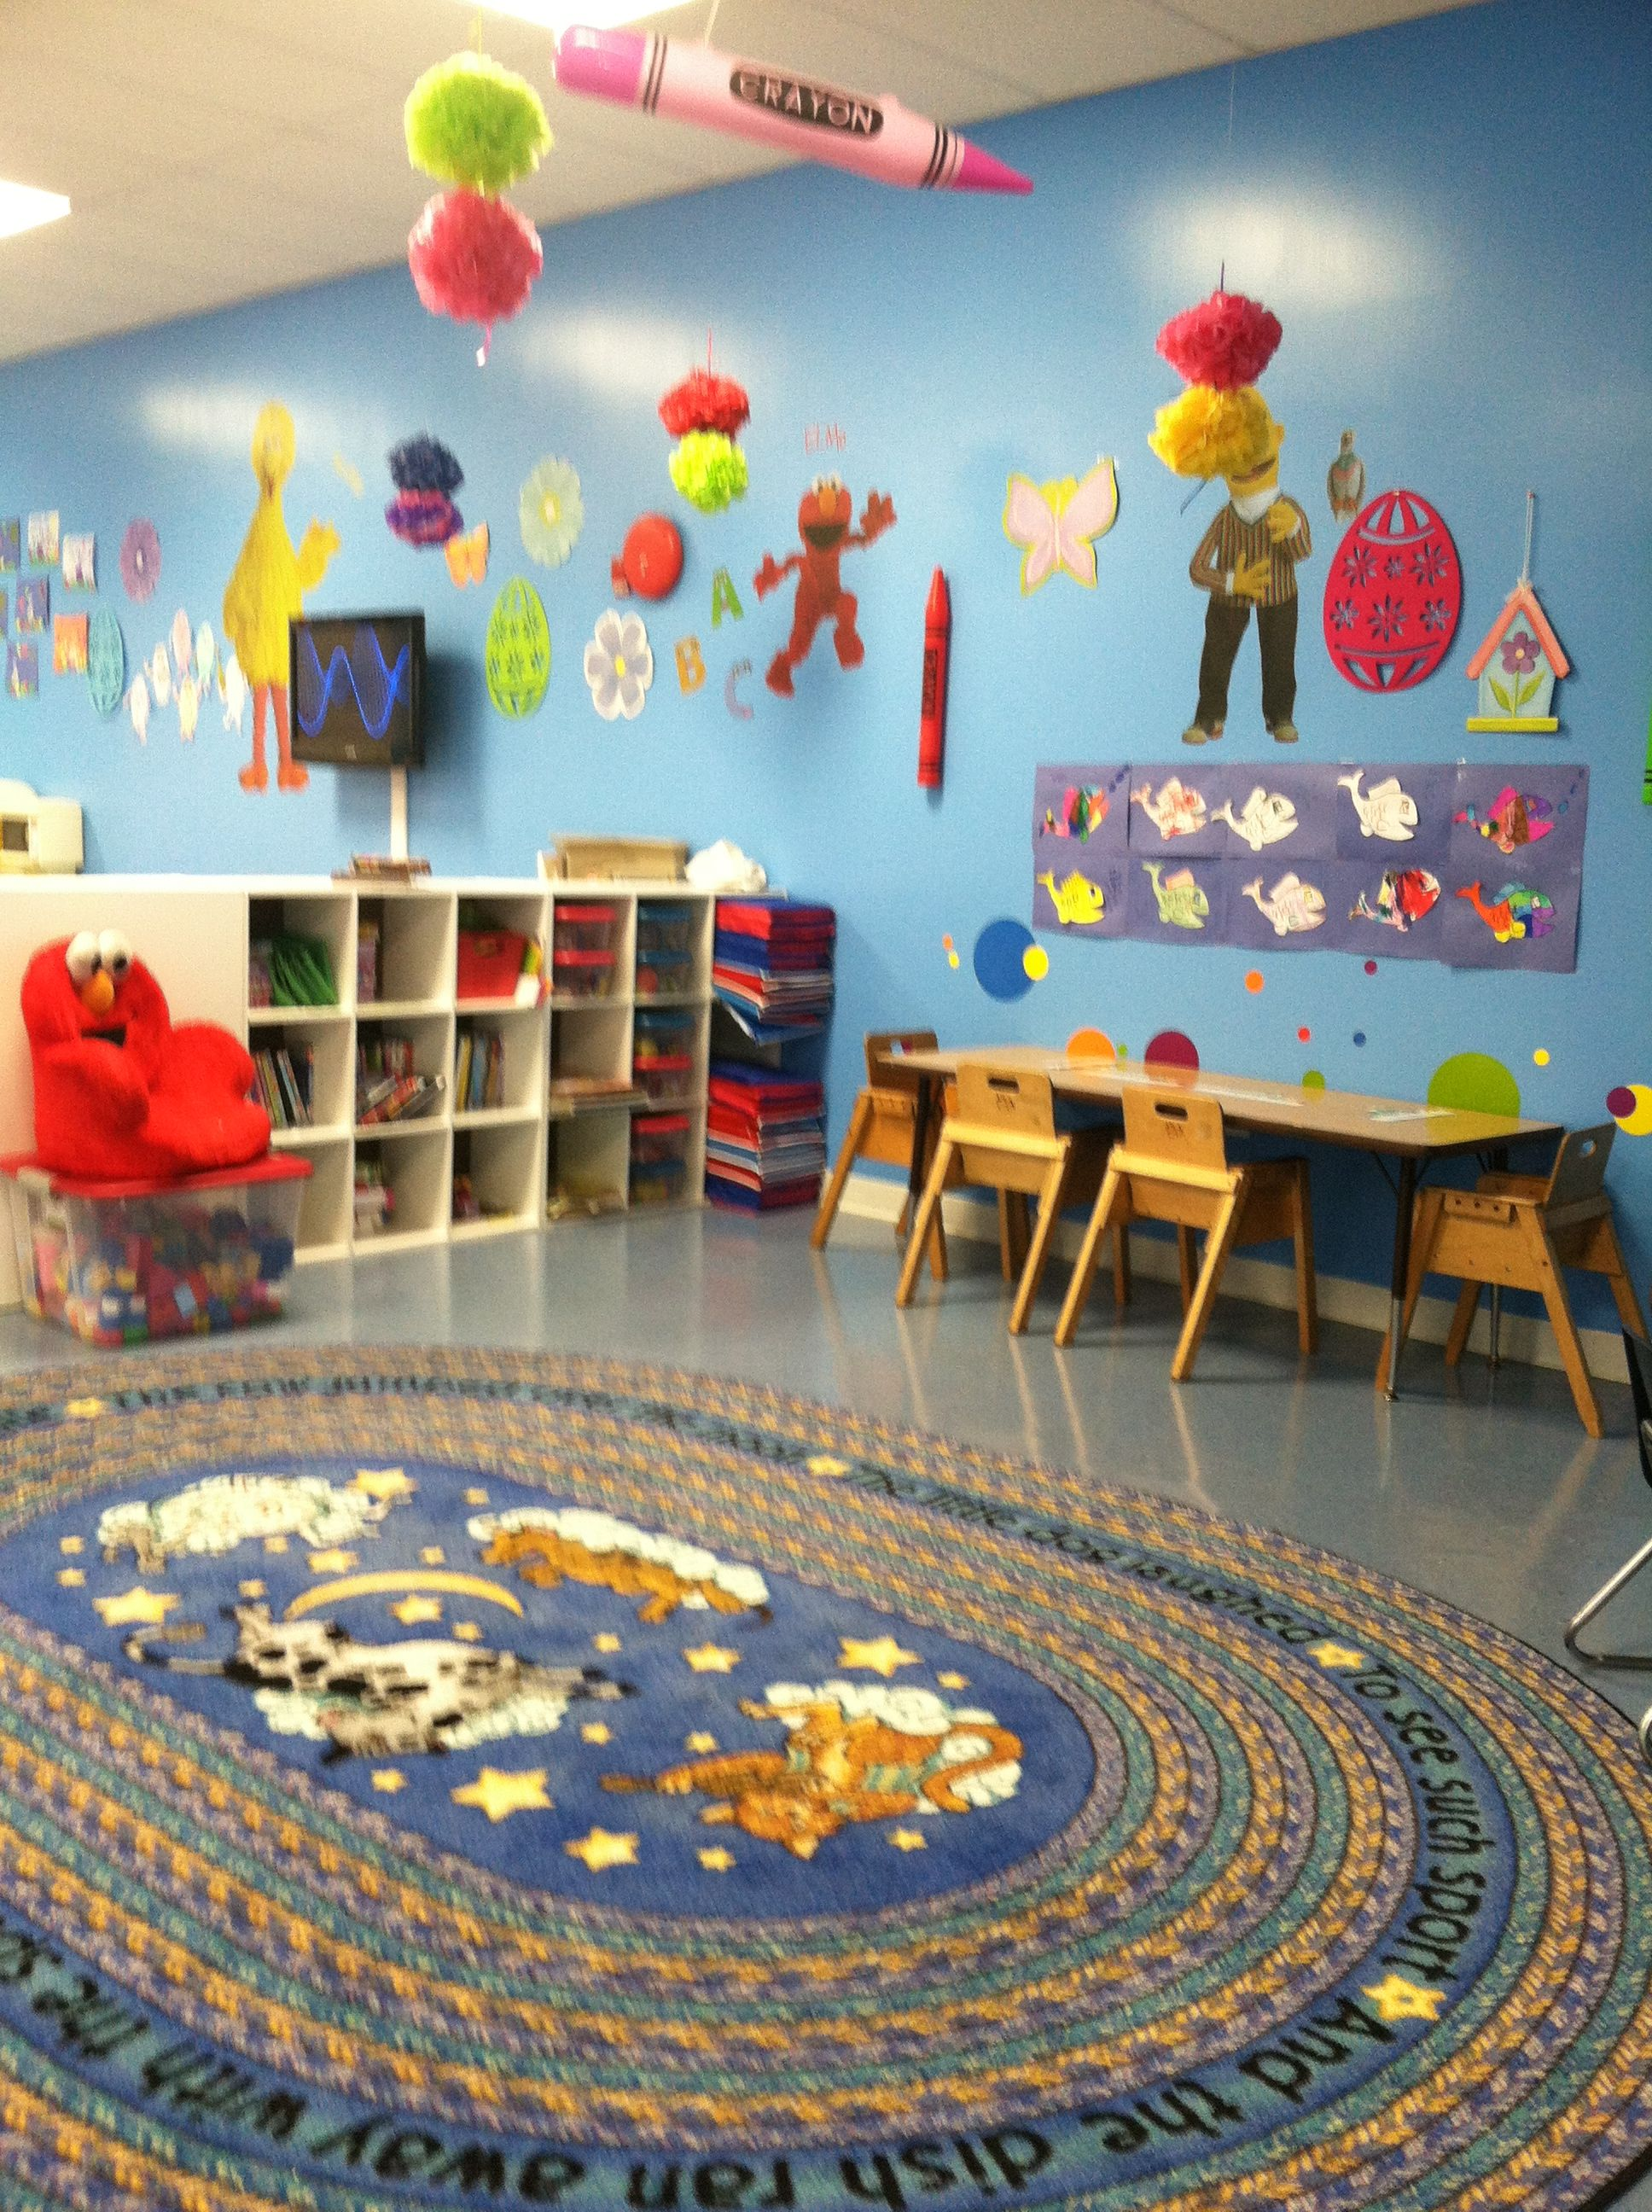 Daycare Classroom Decoration